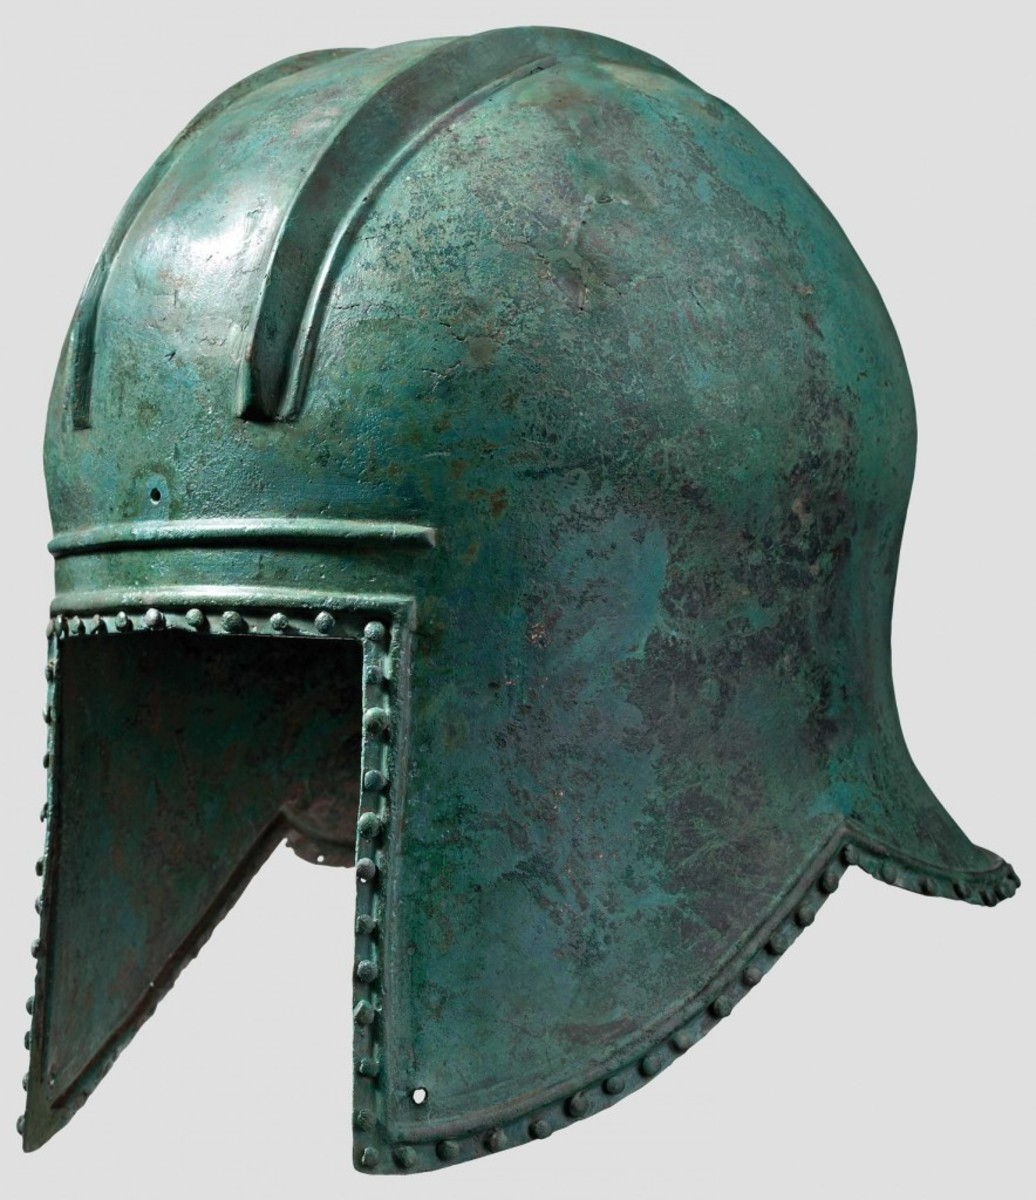 Illyrian bronze helmet with bright green patina from the 6th century. HH64 Lot No 3084